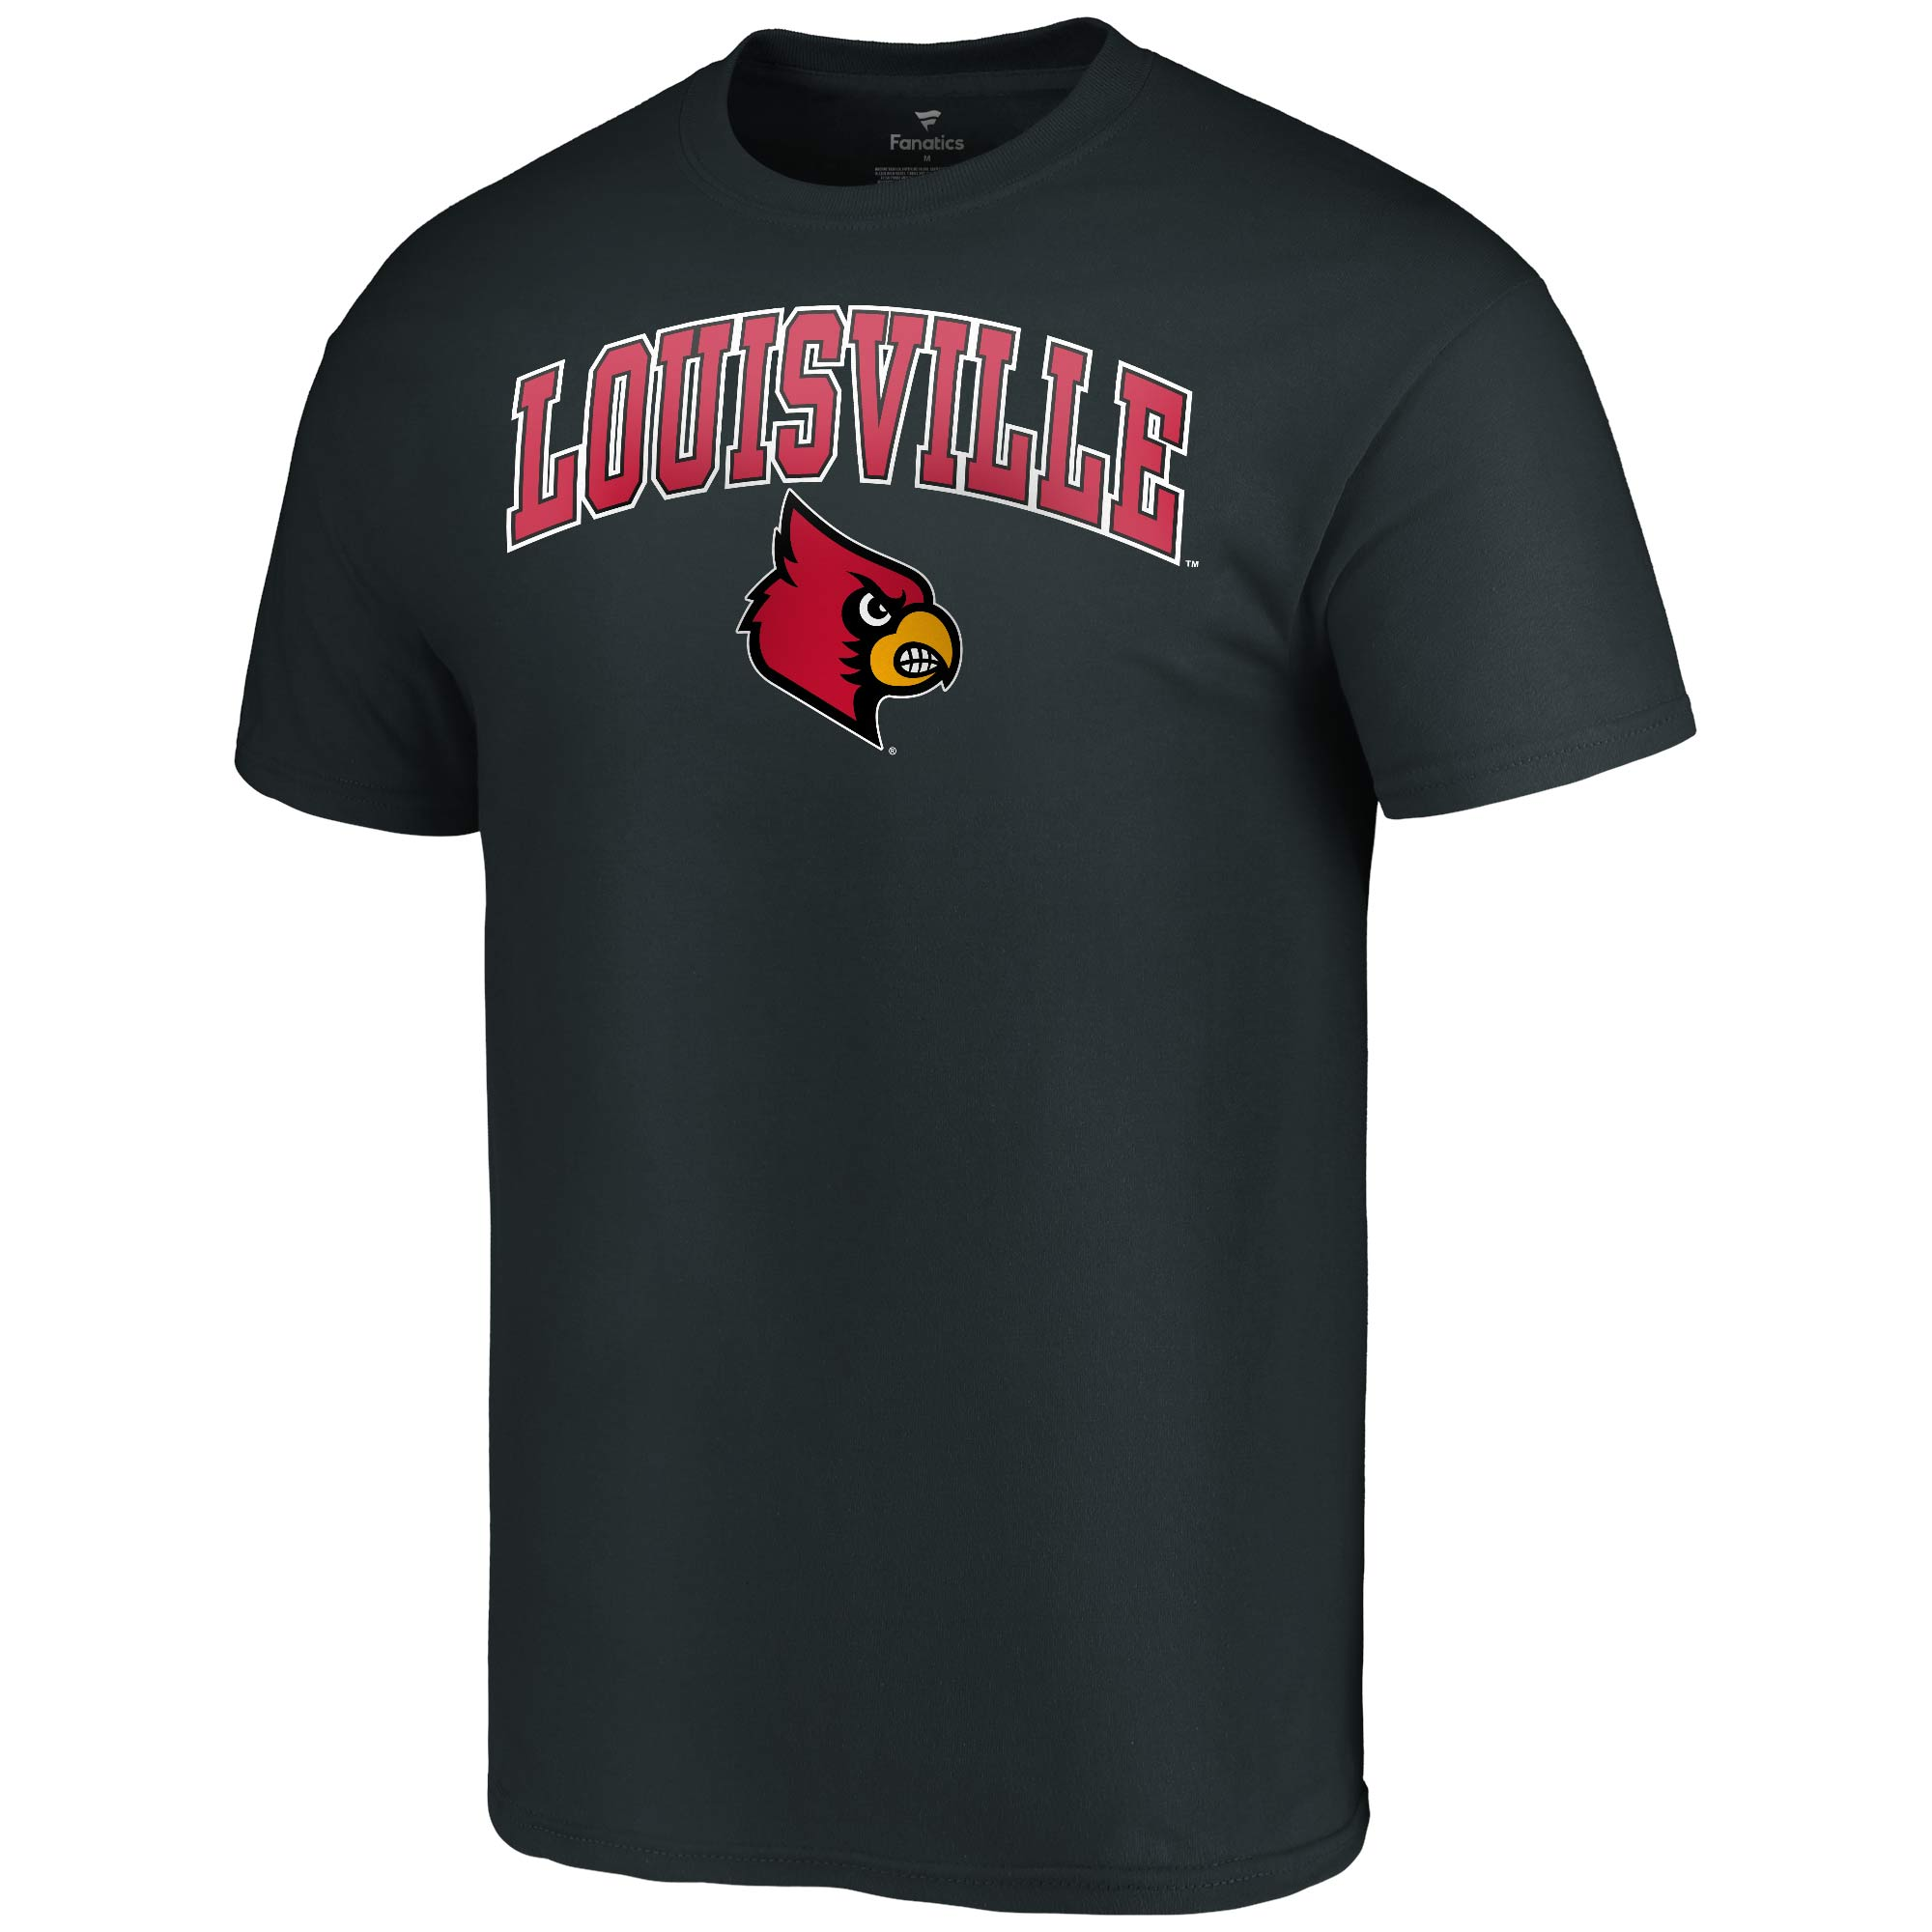 new arrival bfb5f 7e451 Louisville Cardinals Fanatics Branded Campus T-Shirt - Black - Walmart.com